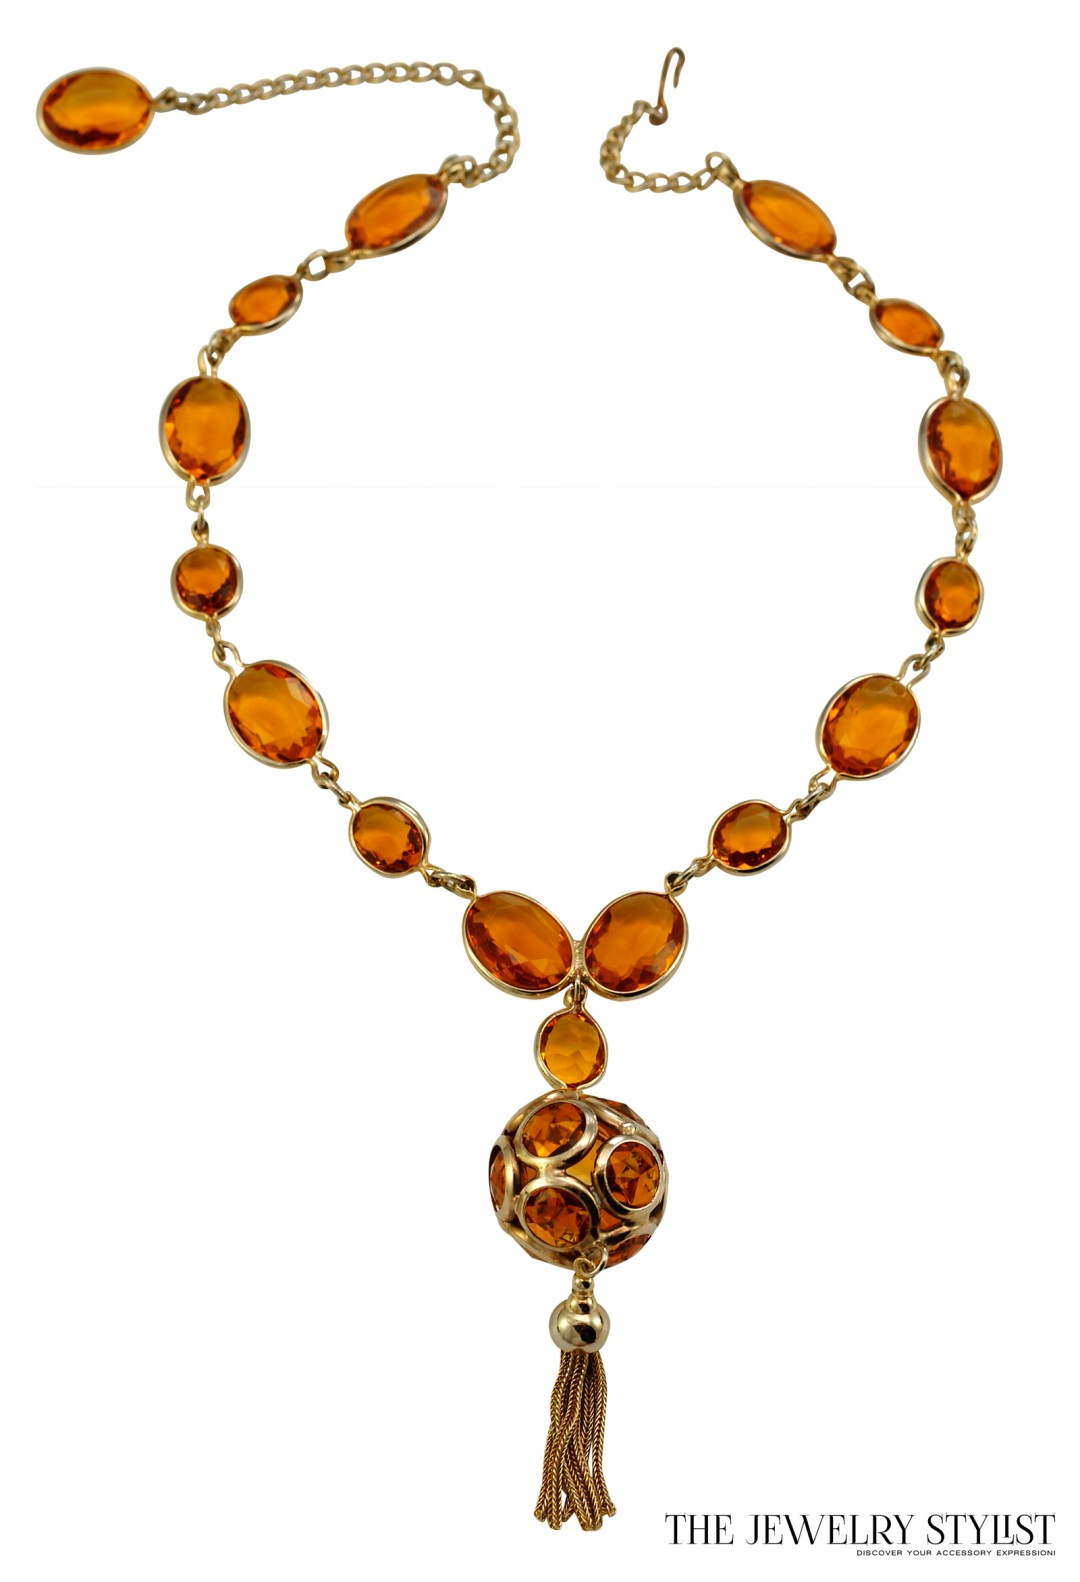 Fab Bezel Set Topaz-Colored Rhinestone Pendant Necklace